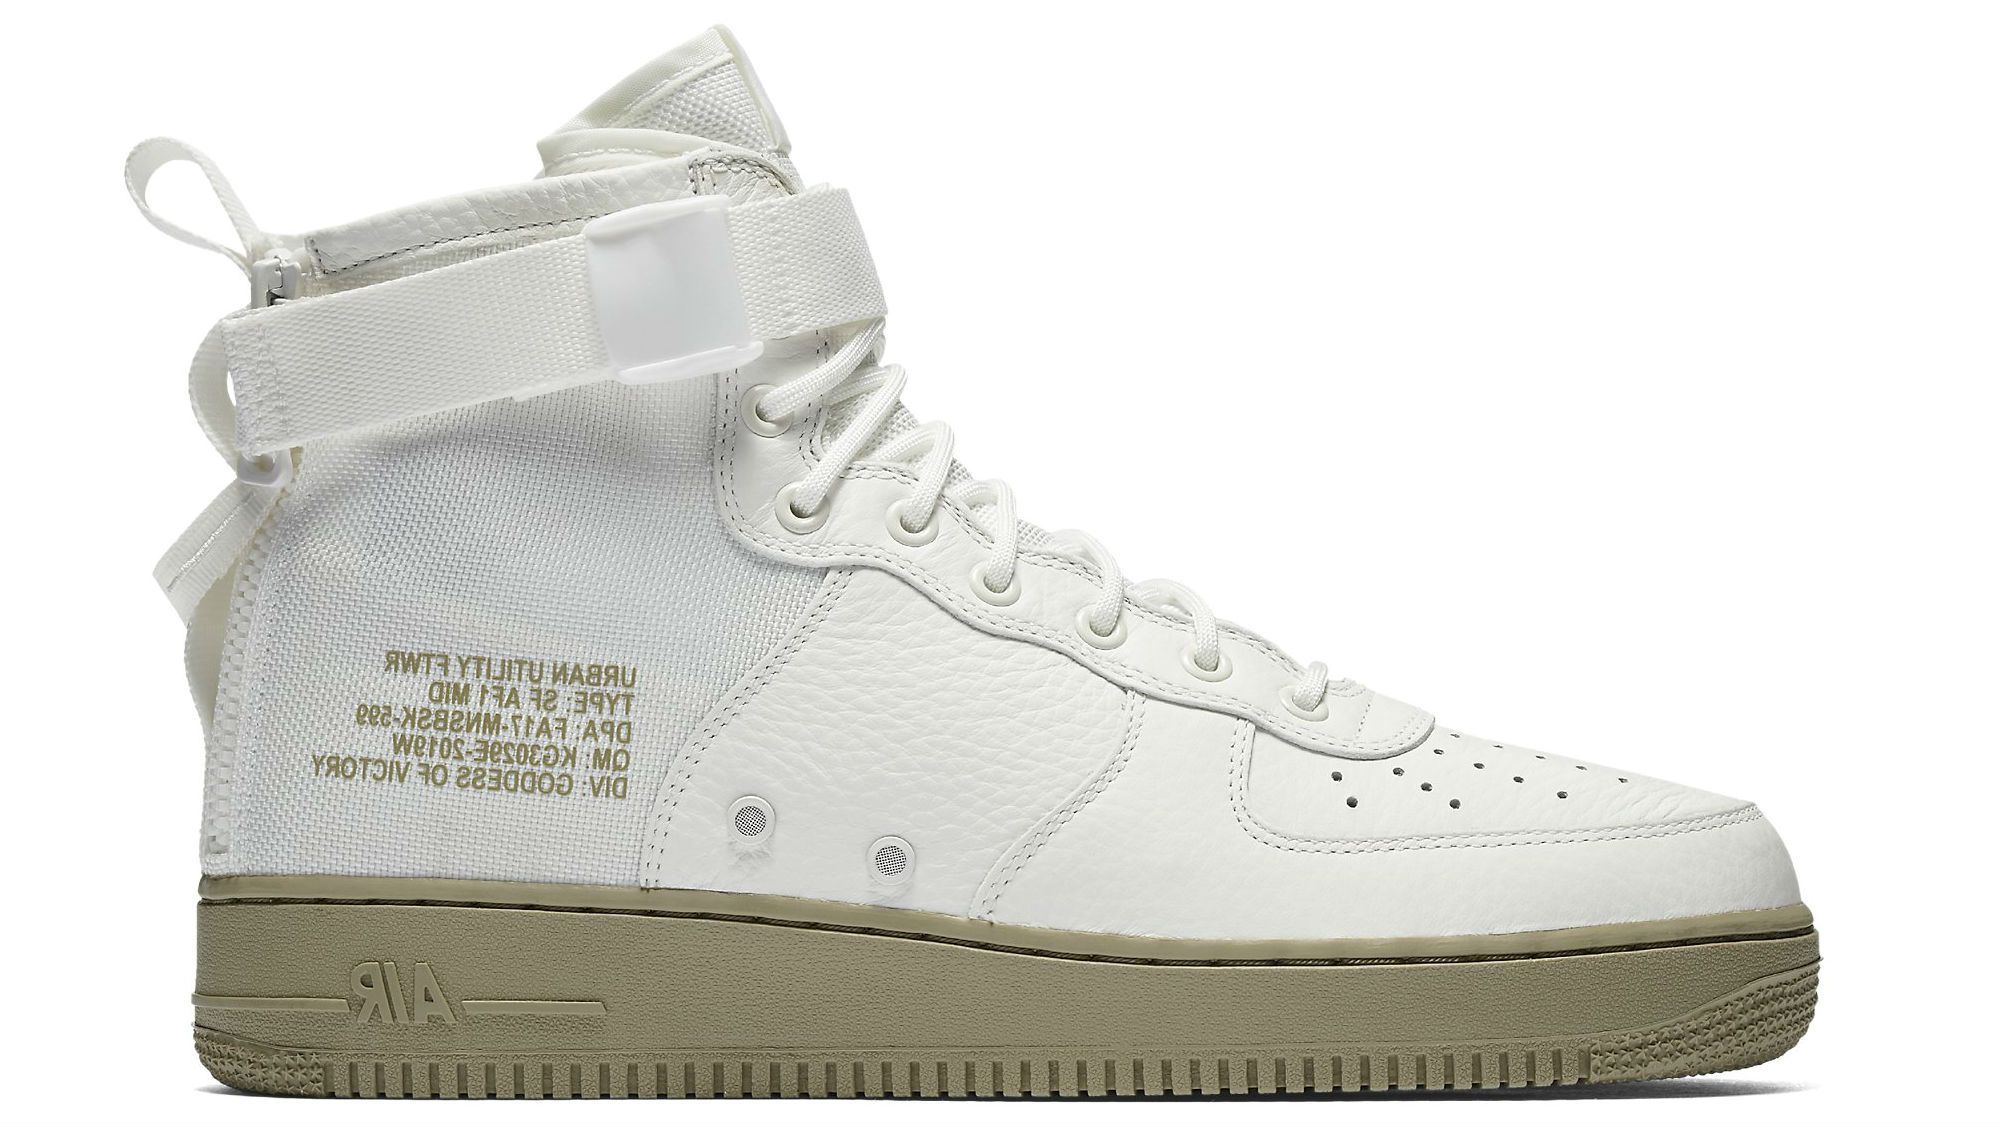 Nike Special Field Air Force 1 Mid Ivory/Neutral Olive